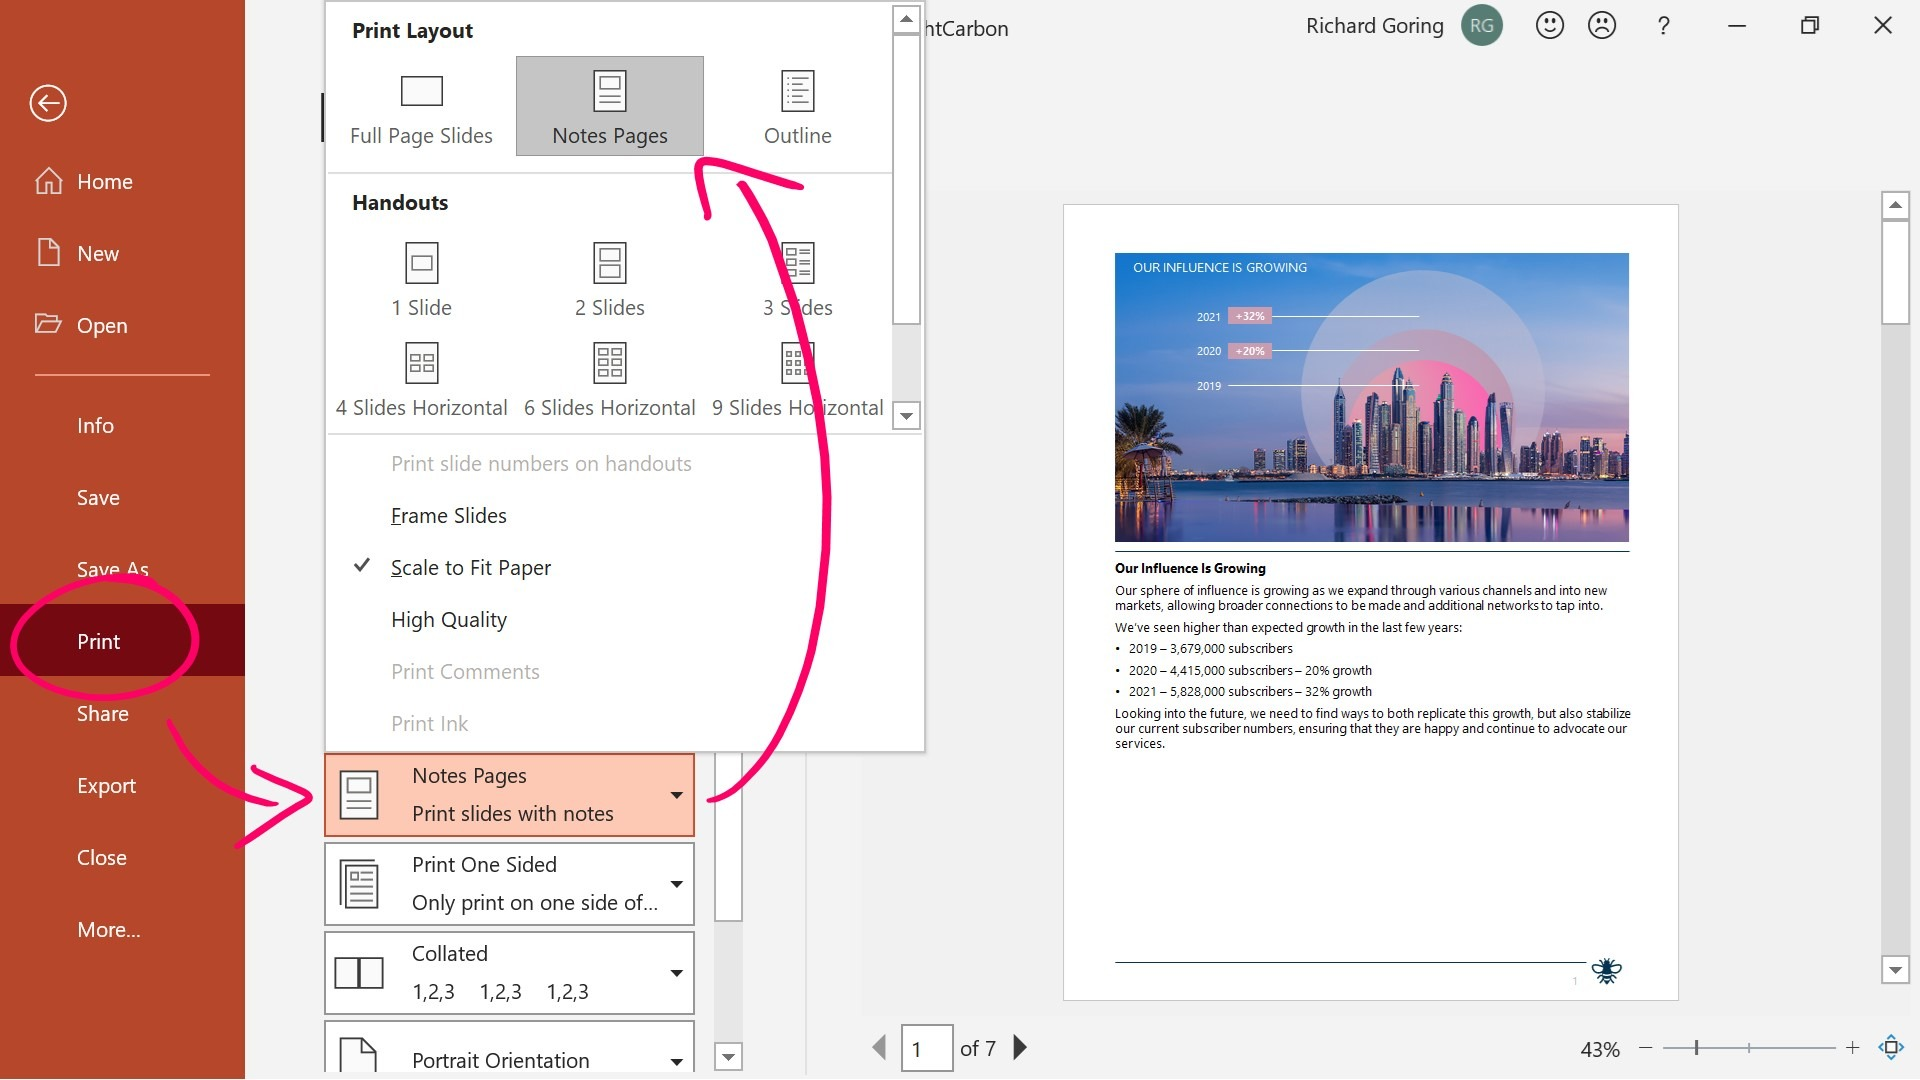 Screenshot of PowerPoint showing the Print Layout options. The screenshot is annotated with arrows pointing to the Notes Pages option.